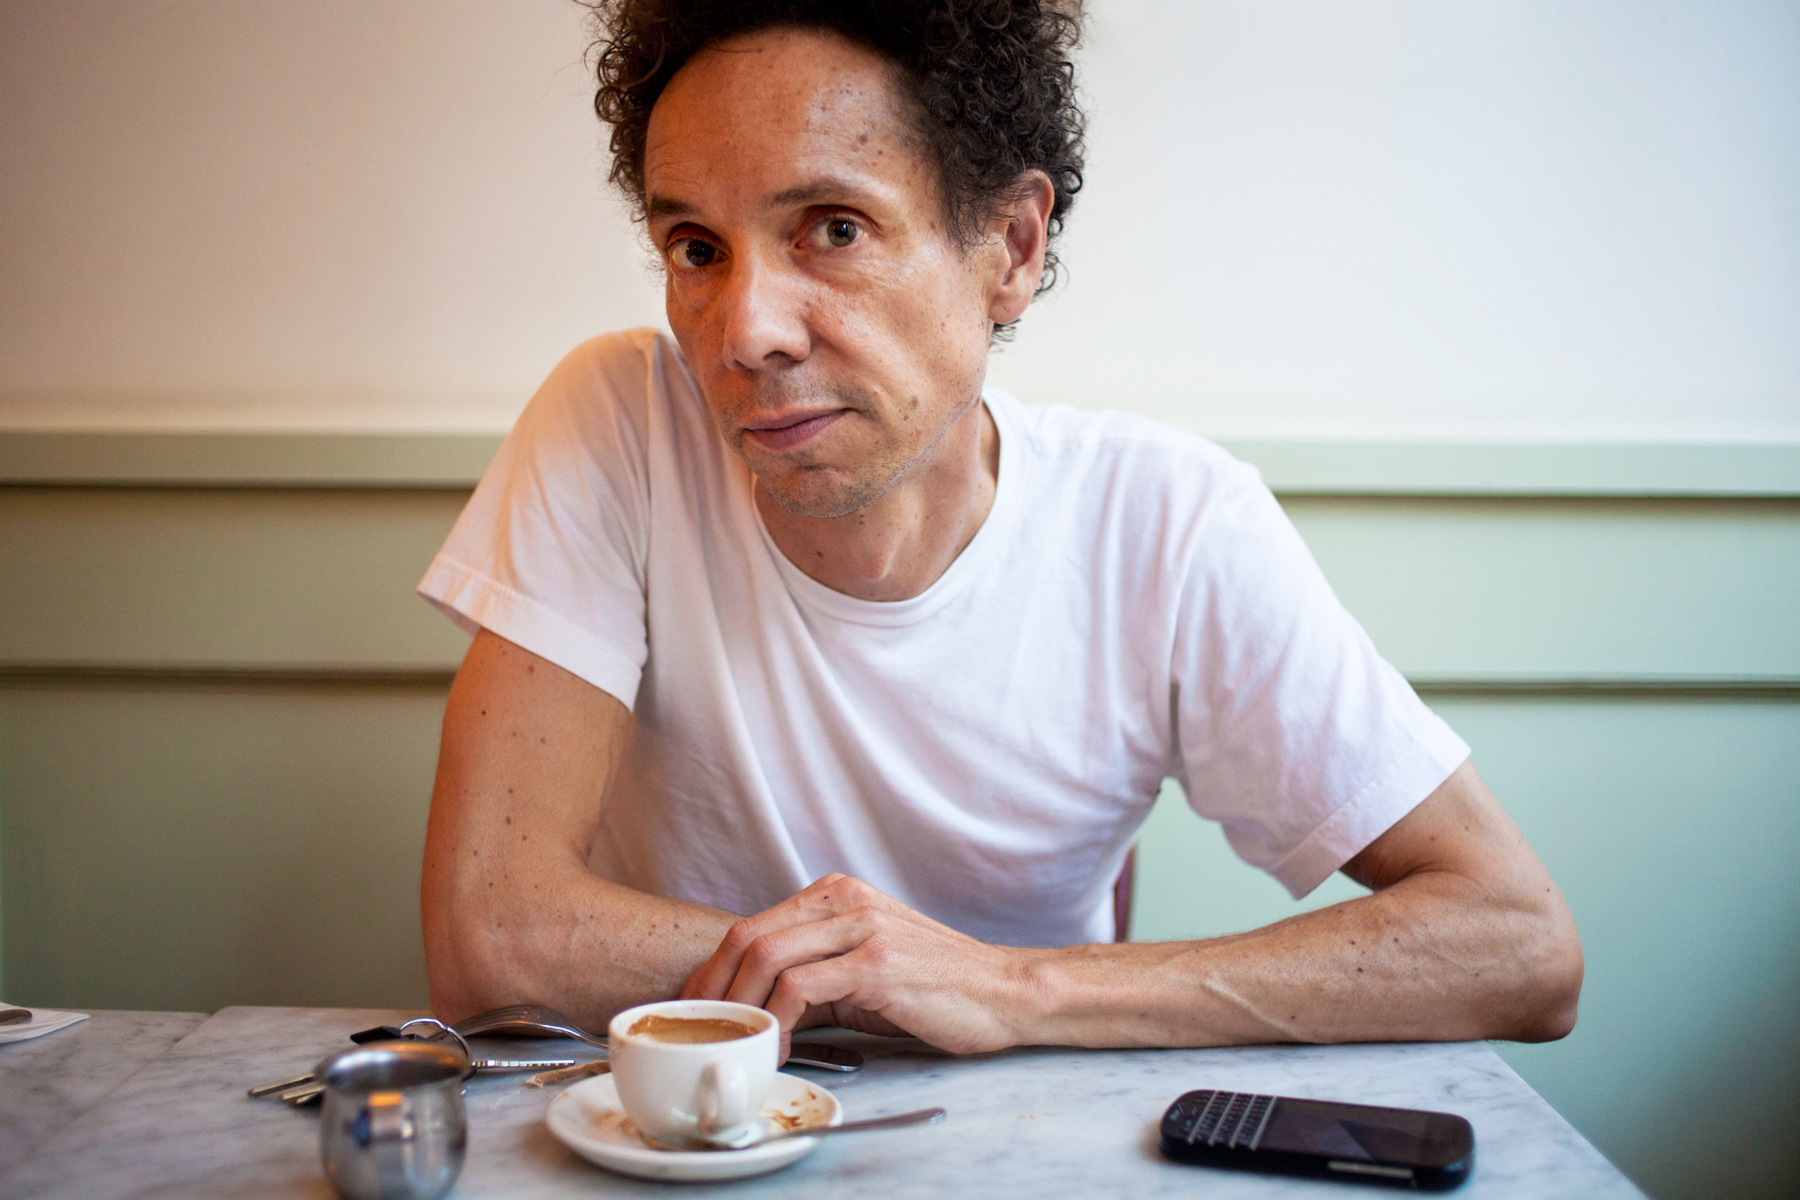 Malcolm Gladwell Podcasts: 'Revisionist History, 'Broken Record